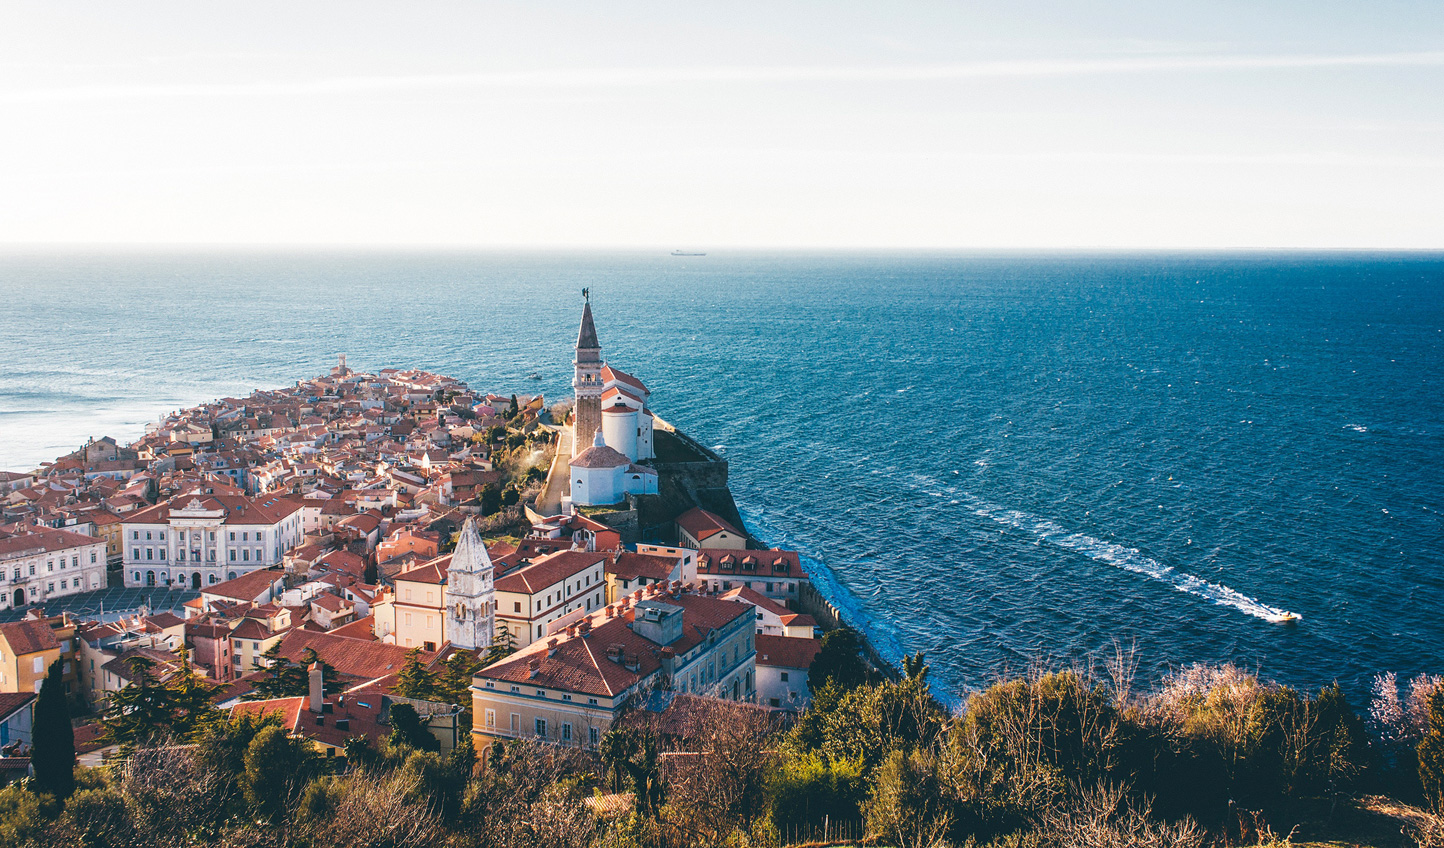 Uncover the beauty of Slovenia's coastline at Piran